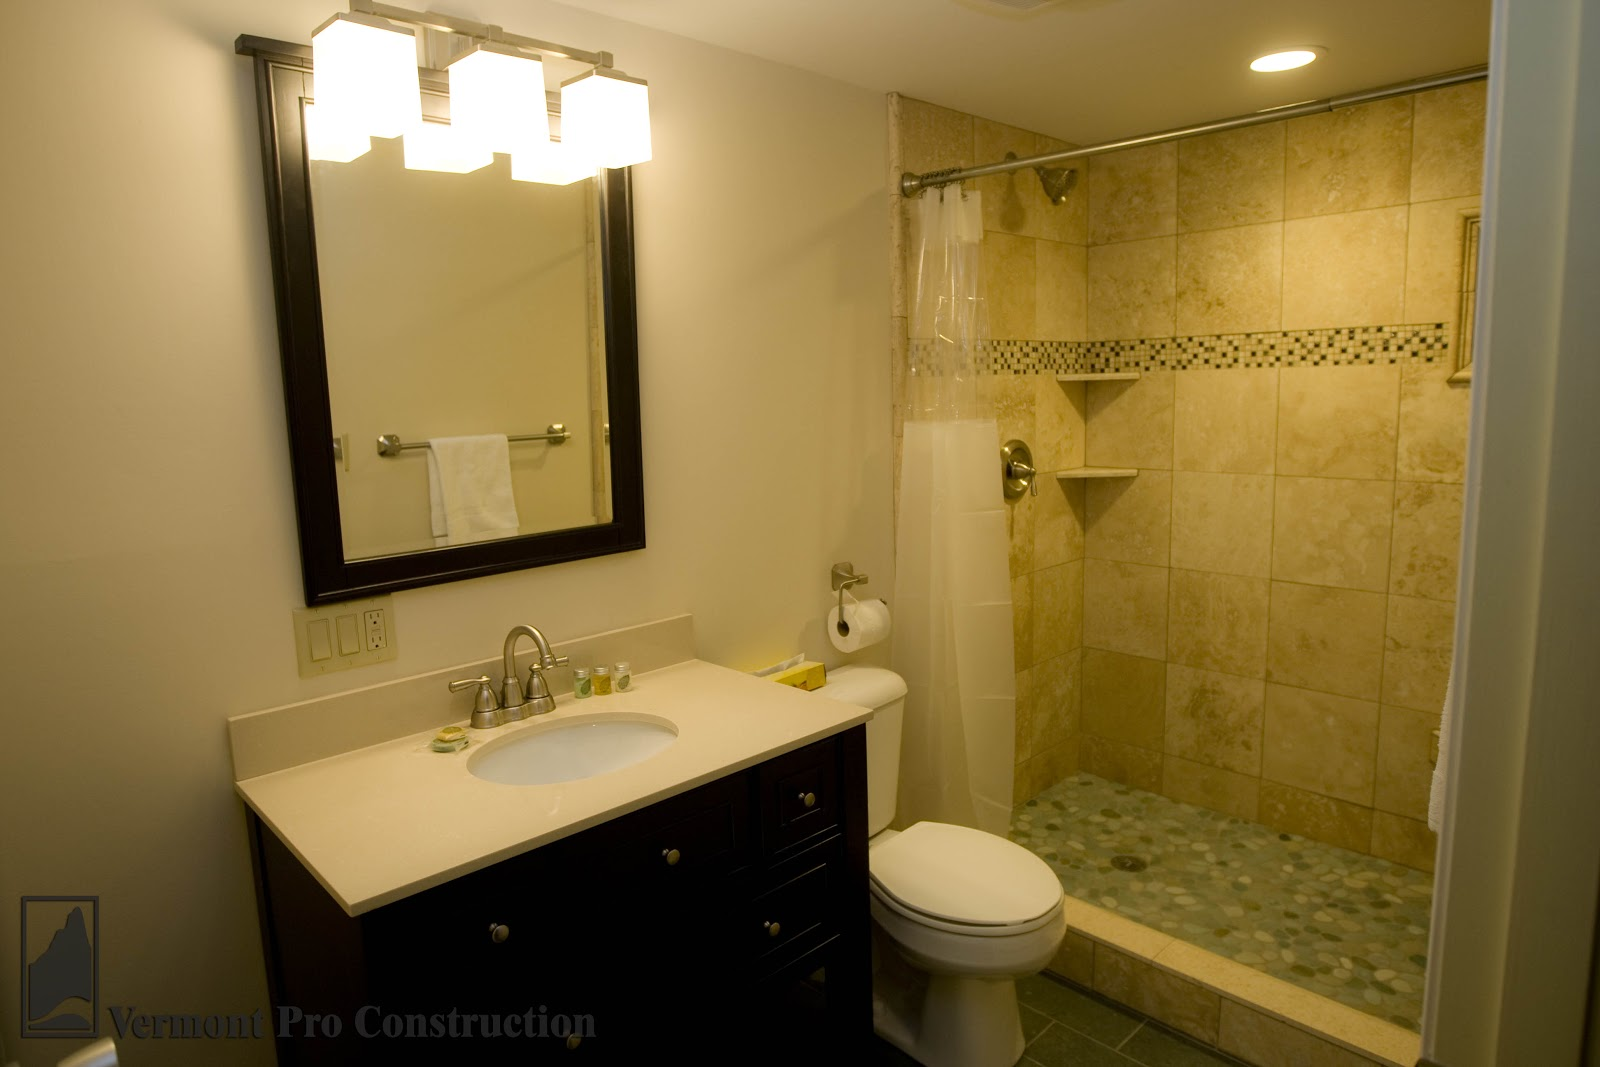 professional construction painting llc tolchin bathroom remodel